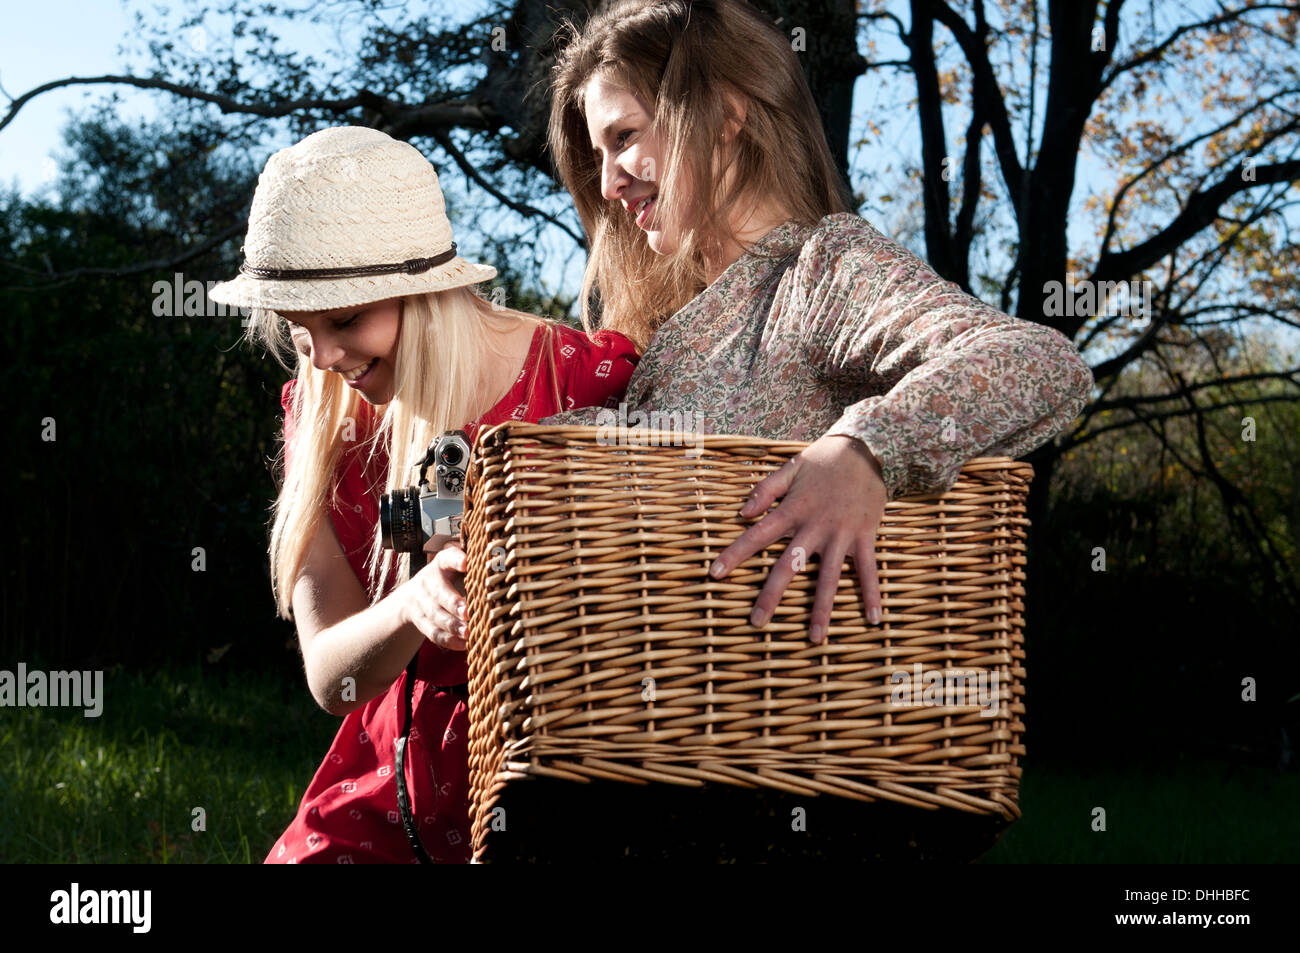 Young women carrying picnic basket - Stock Image